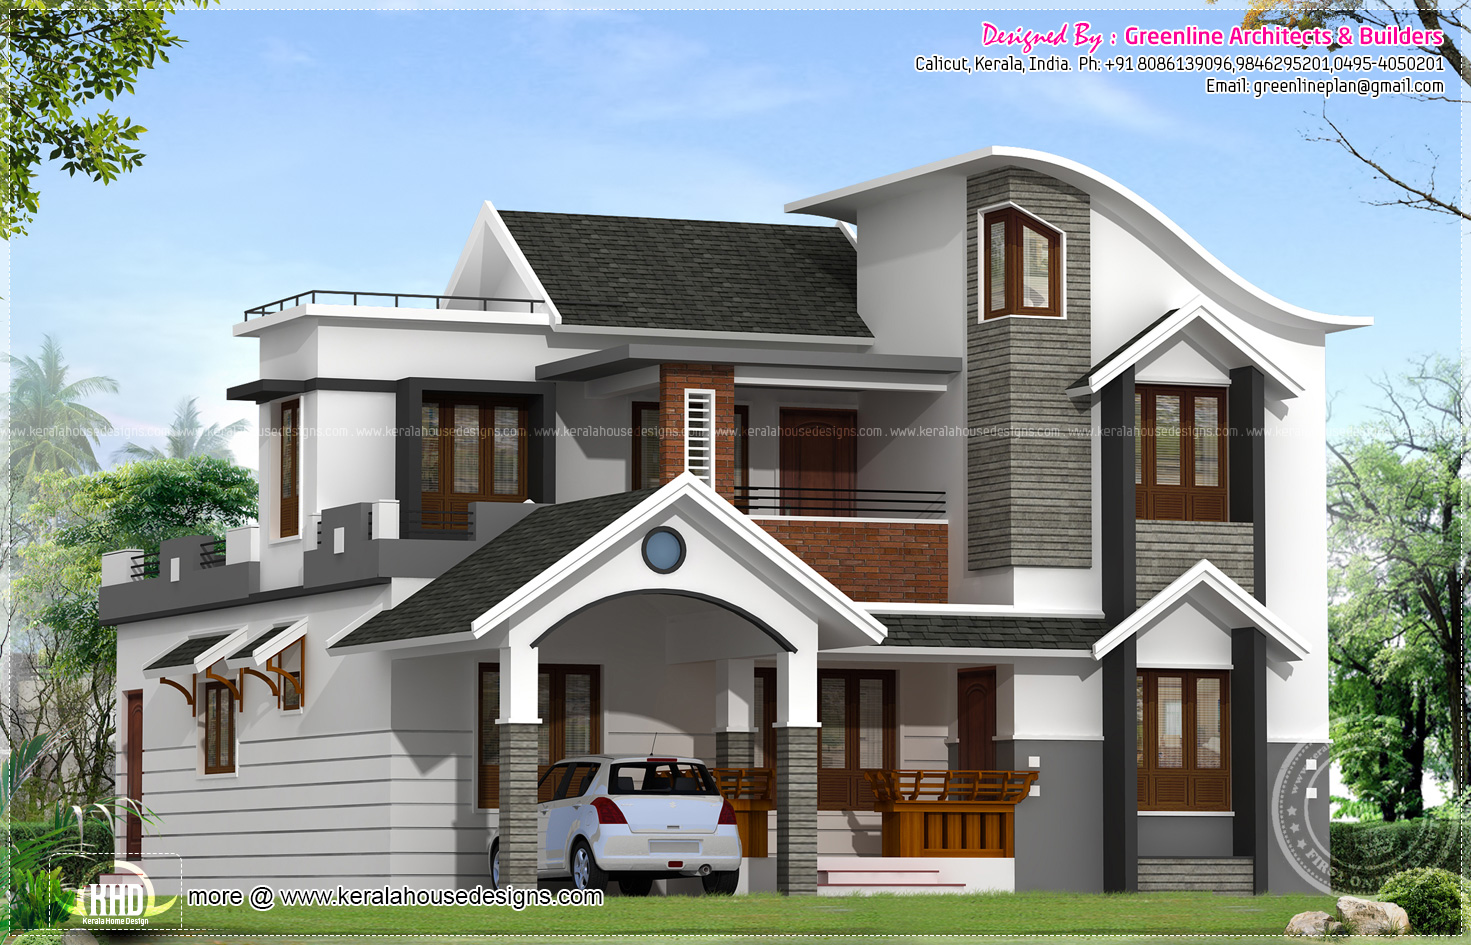 Modern house architecture in kerala kerala home design for Home architecture design kerala